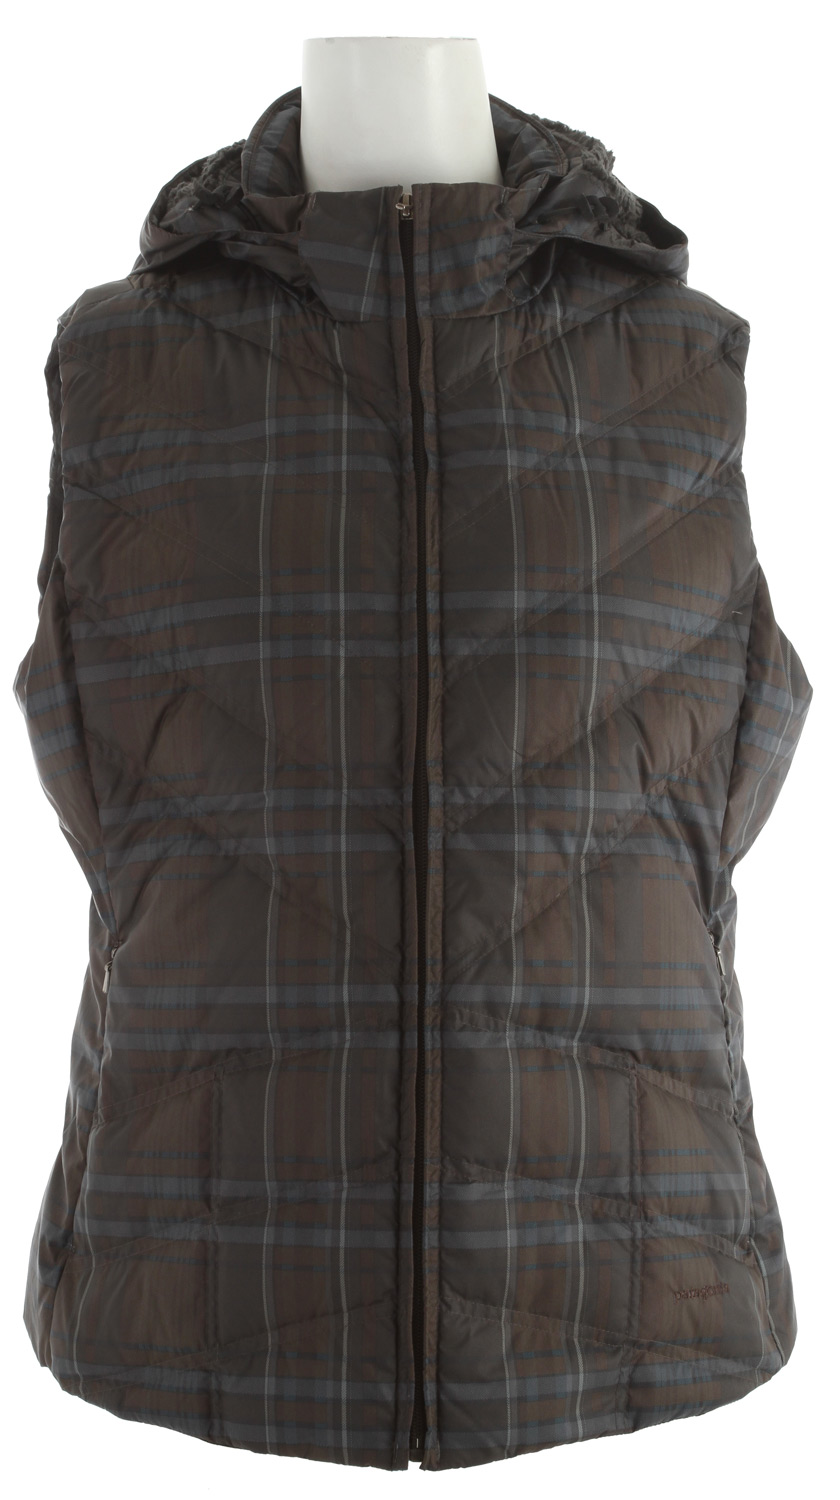 Our Down With It Vest is made with an all-recycled polyester shell and 600-fill-power premium European goose-down insulation, and comes with a removable hood. After a frigid North Coast session, re-warm your core in the Down With It Vest. The all-recycled polyester shell is treated with a Deluge DWR (durable waterproof repellent) finish to shed moisture; 600-fill-power premium goose-down insulation provides serious warmth. The removable hood is lined with luscious deep-pile fleece and adjusts with two drawcords. Diagonal chevron quilting lends a contoured fit; non-quilted side panels provide a sleek silhouette. Pockets: zippered on-seam handwarmers and an internal zippered security.Key Features of the Patagonia Down With It Vest: 100% recycled polyester shell insulated with 600-fill-power premium European goose down Adjustable, removable hood lined with high-pile fleece Zippered on-seam handwarmer pockets; internal zippered security pocket Diagonal chevron quilting for contoured fit; side panels are not quilted for a sleek silhouette Hip length 2.3 oz 100% recycled polyester with a Deluge DWR (durable water repellent) finish. Insulation: 600-fill-power premium European goose down. Hood lining: 100% polyester fleece 425g (15 oz) Made in China. Recycled Polyester: We recycle used soda bottles, unusable second quality fabrics and worn out garments into polyester fibers to produce many of our clothes. Deluge DWR: Patagonia's proprietary durable water repellent fabric finish, Deluge DWR, lasts substantially longer than standard DWRs. Garments with the Deluge DWR finish have like-new repellency after years of extensive use. - $98.95